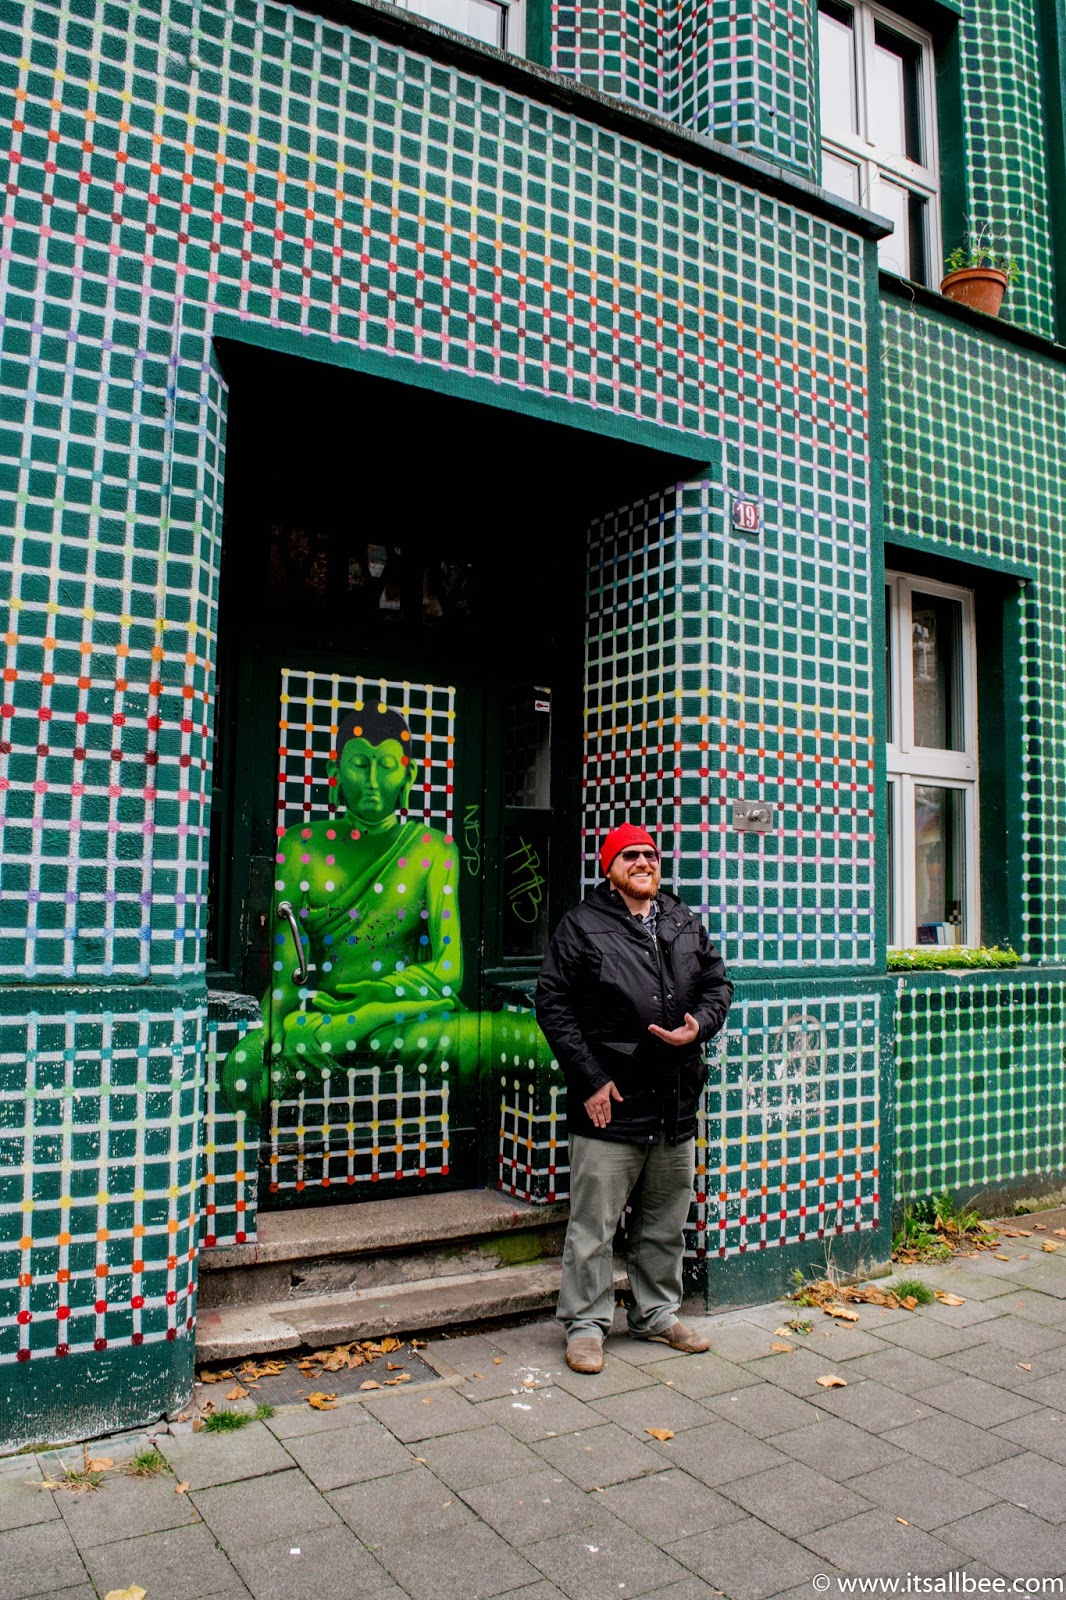 Dusseldorf Kiefernstrasse Street Art | A Colourful Side of Dusseldorf You Need To See